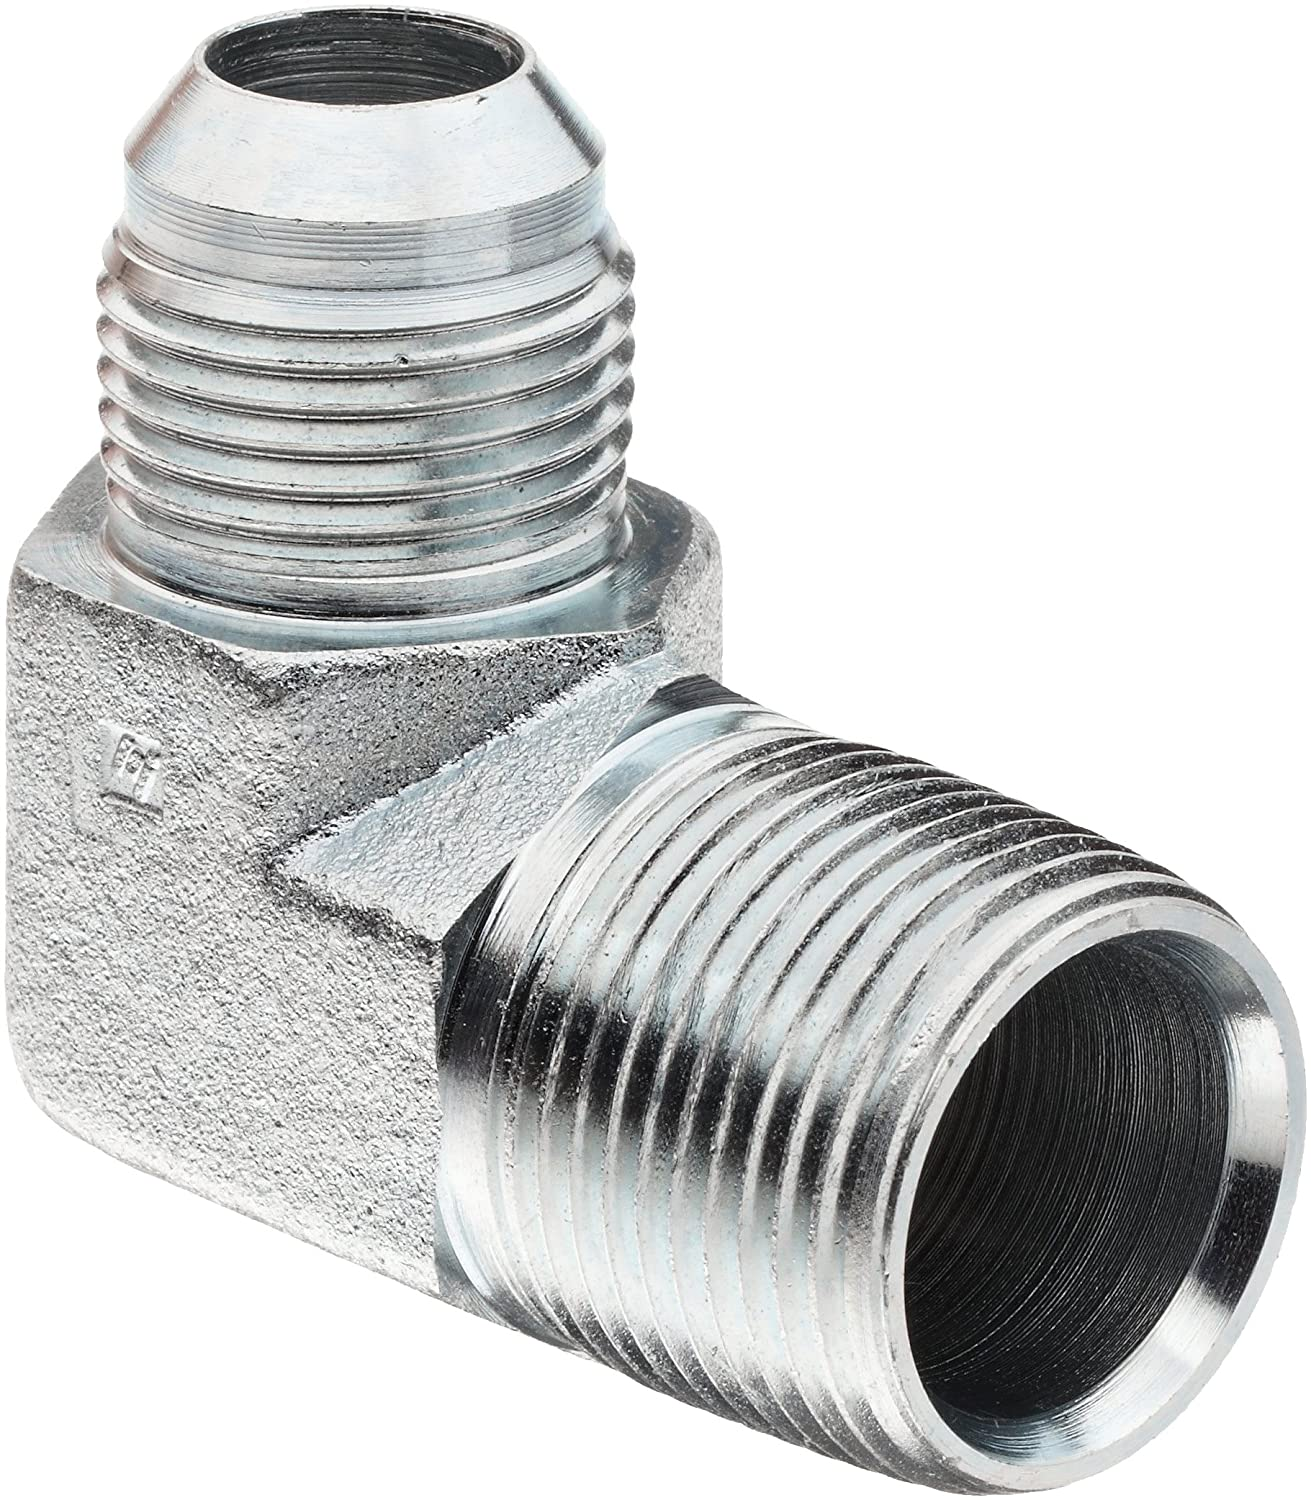 "Brennan 2501-06-06-FG Forged Steel JIC Flared Tube Fitting, 90 Degree Elbow Forgeded, 3/8"" Tube OD JIC Male x 3/8-18 NPTF Male"